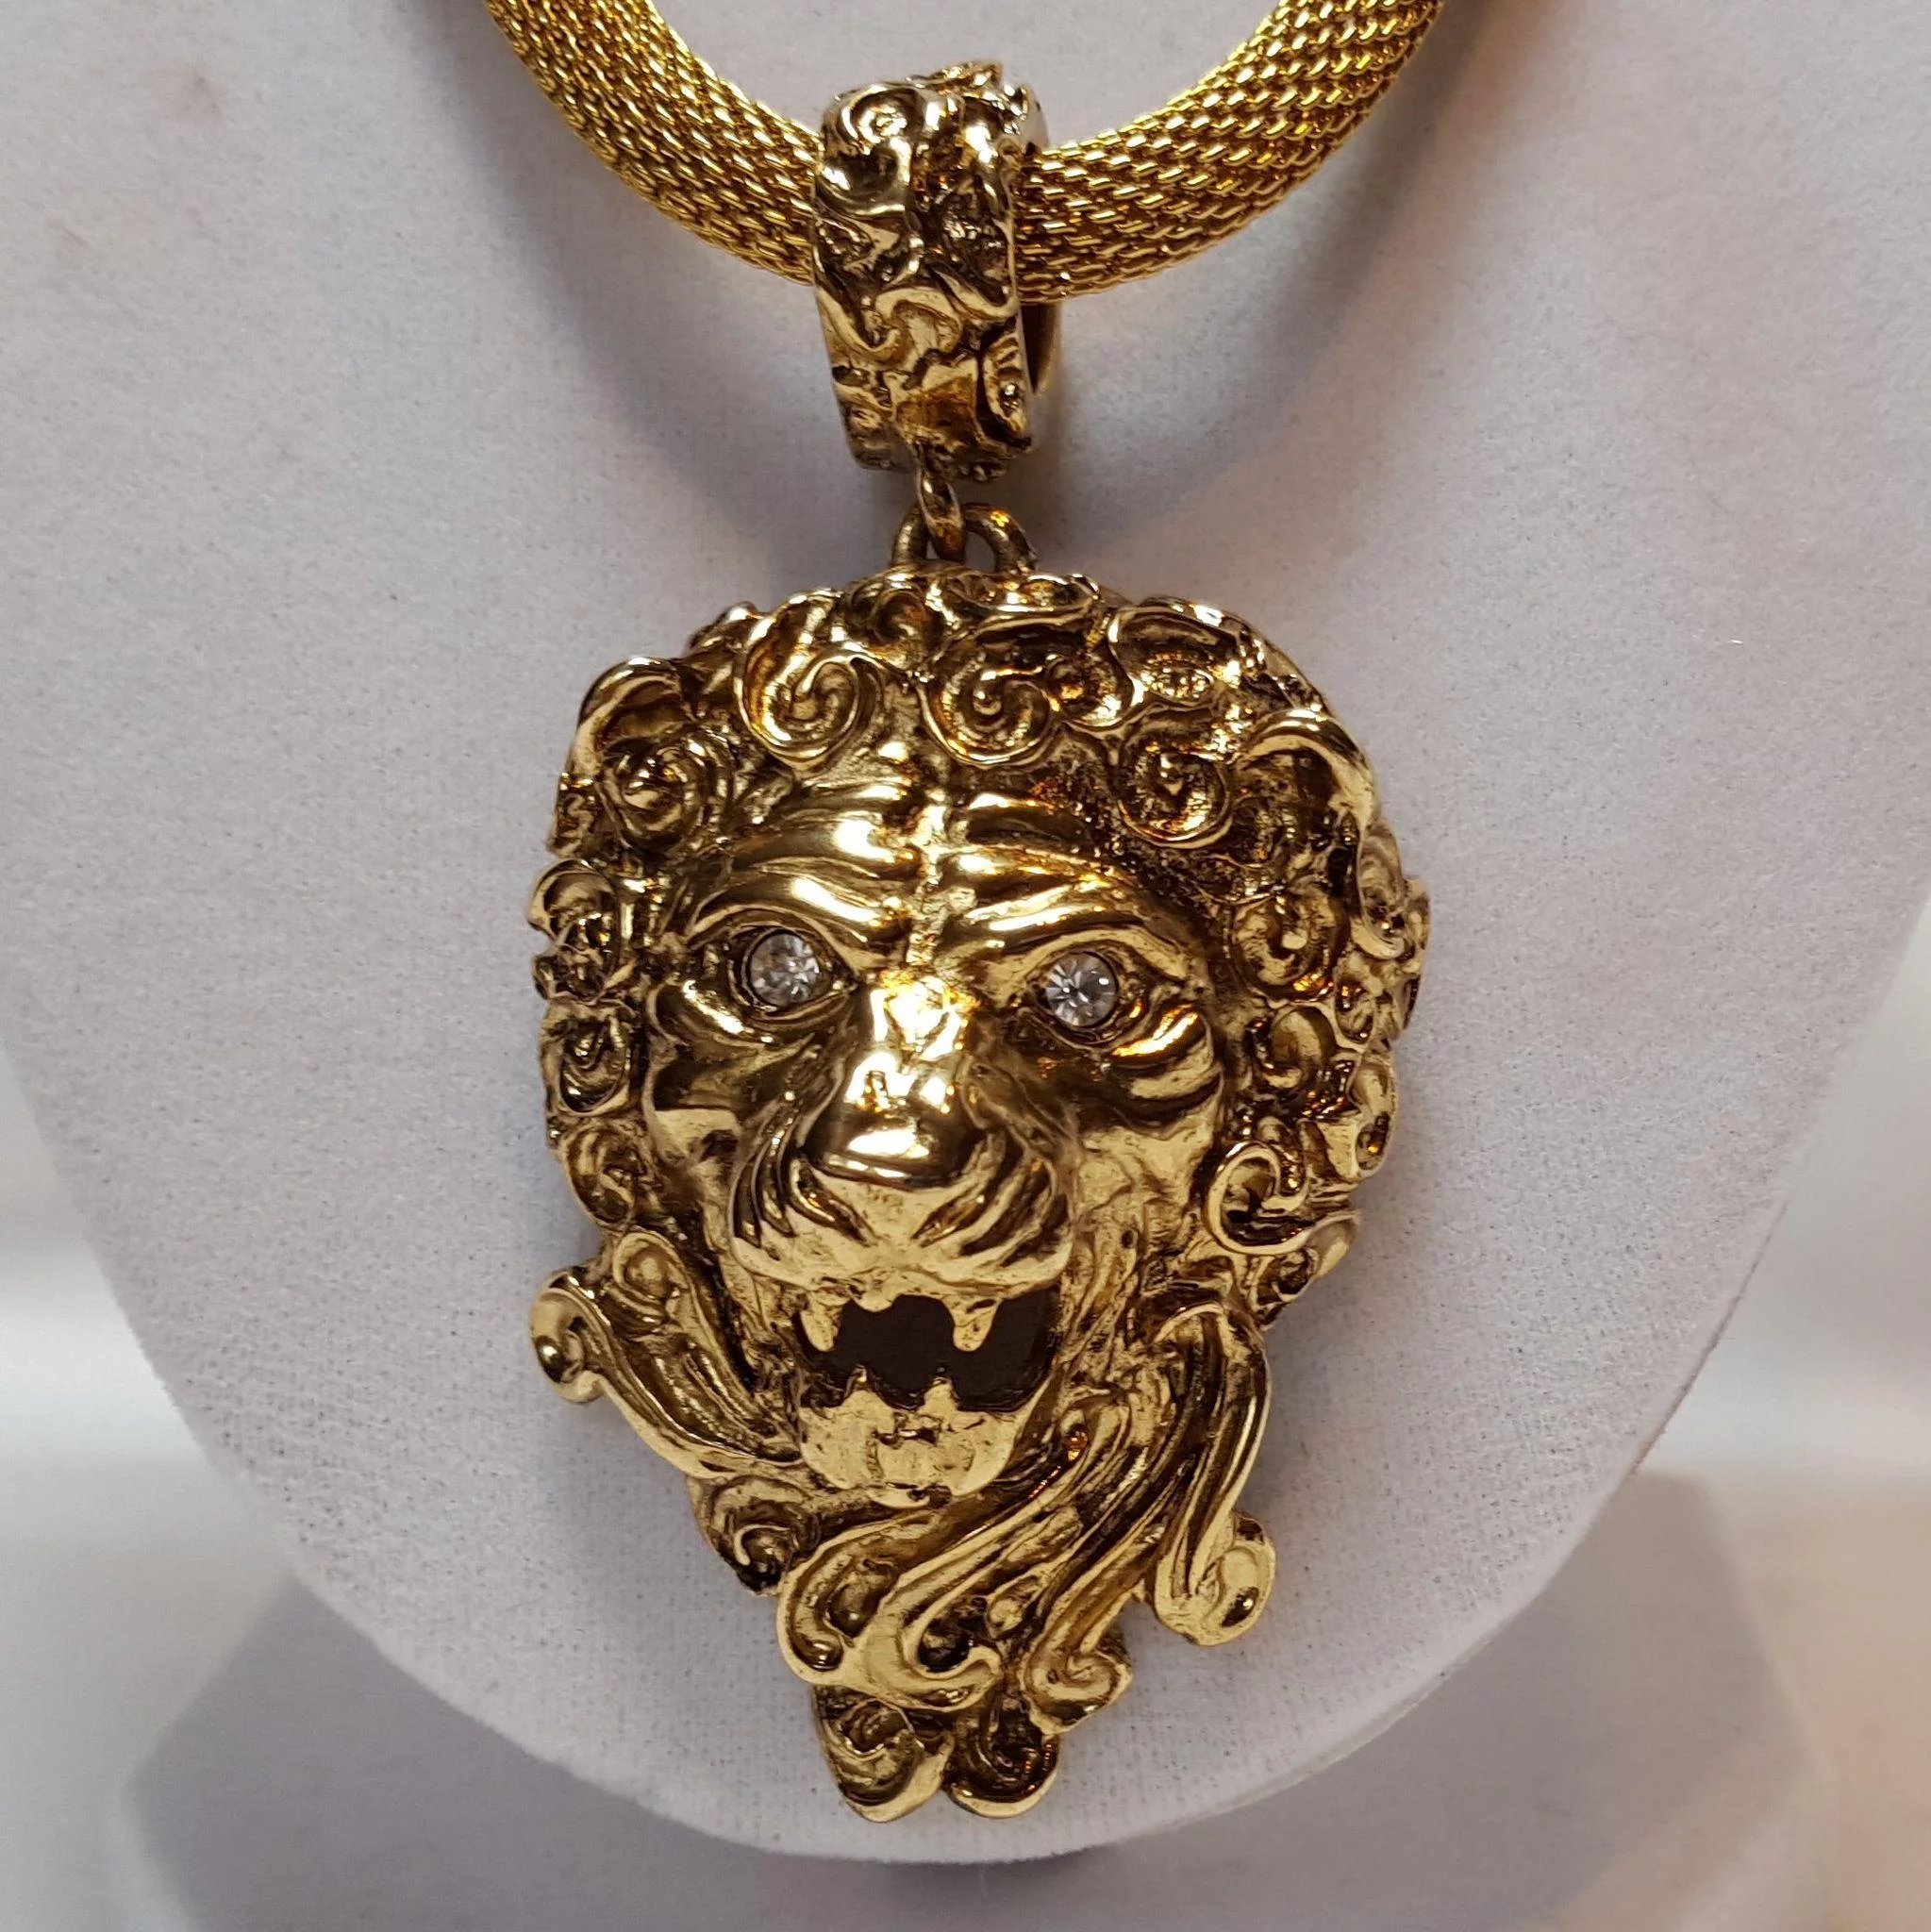 en fashion online versus pendant accessories uk fashionjewellery for gb versace store women lion lioncoinnecklace fjmt coin jewellery necklace